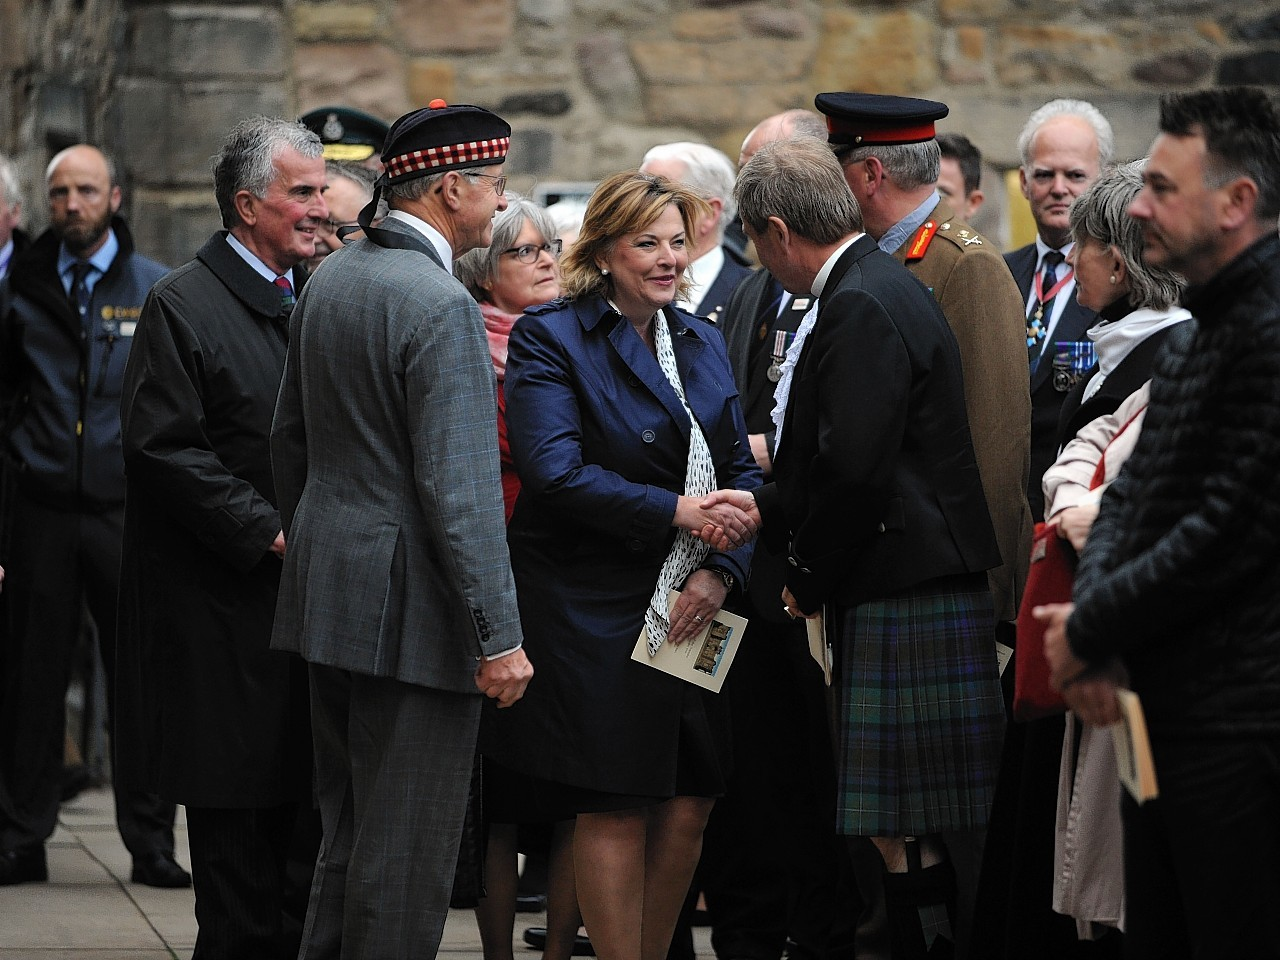 Organisers and descendants came together on thursday evening on an overnight vigil that will take place at the scottish national war memorial